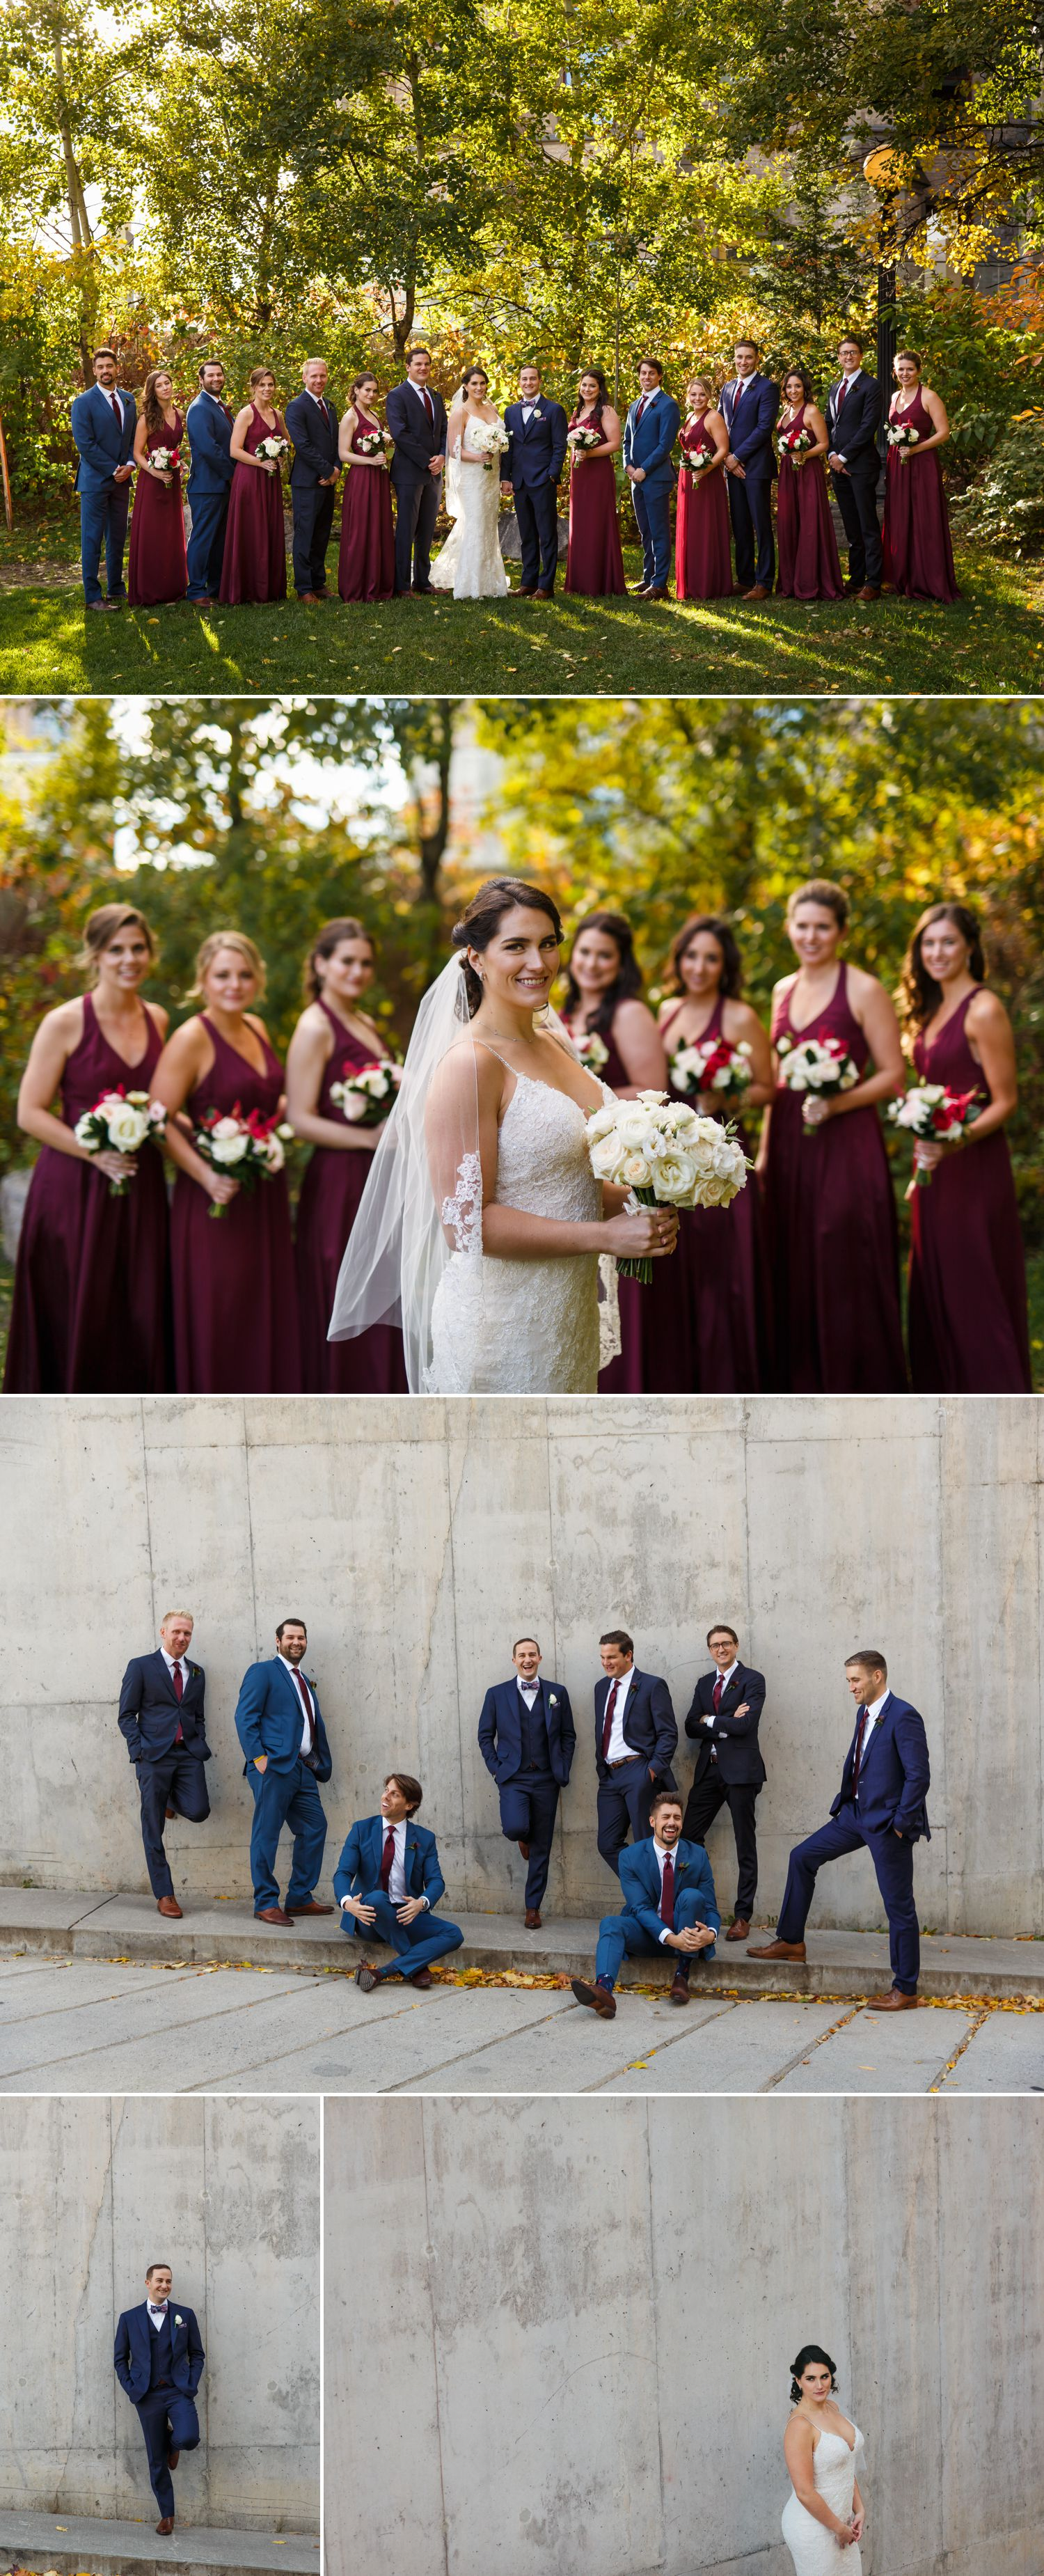 Portraits of the bride and groom with their wedding party at The Museum of Nature in downtown Ottawa